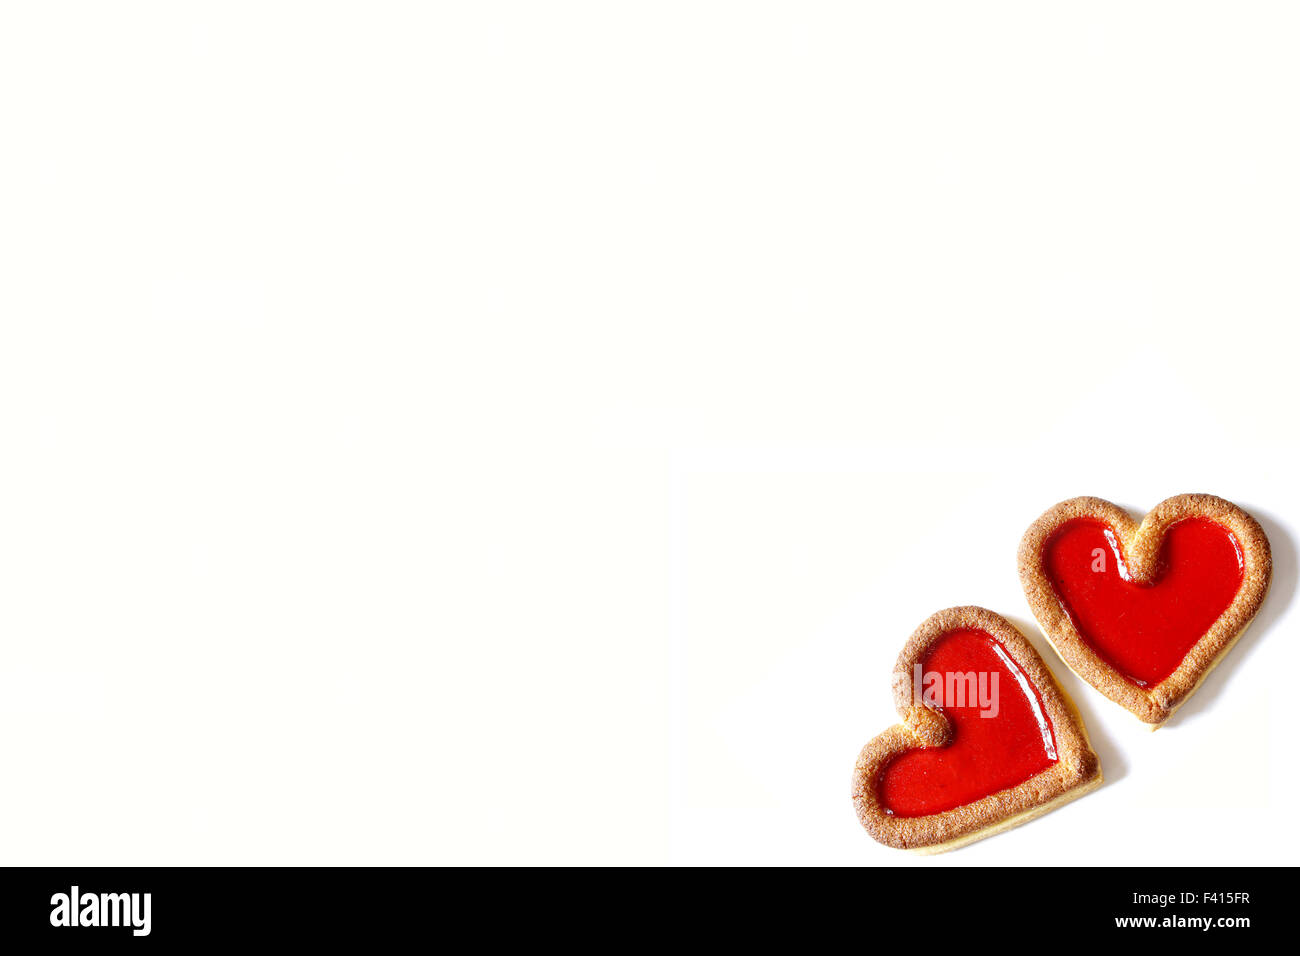 two red biscuit  hearts beating together on white background - Stock Image